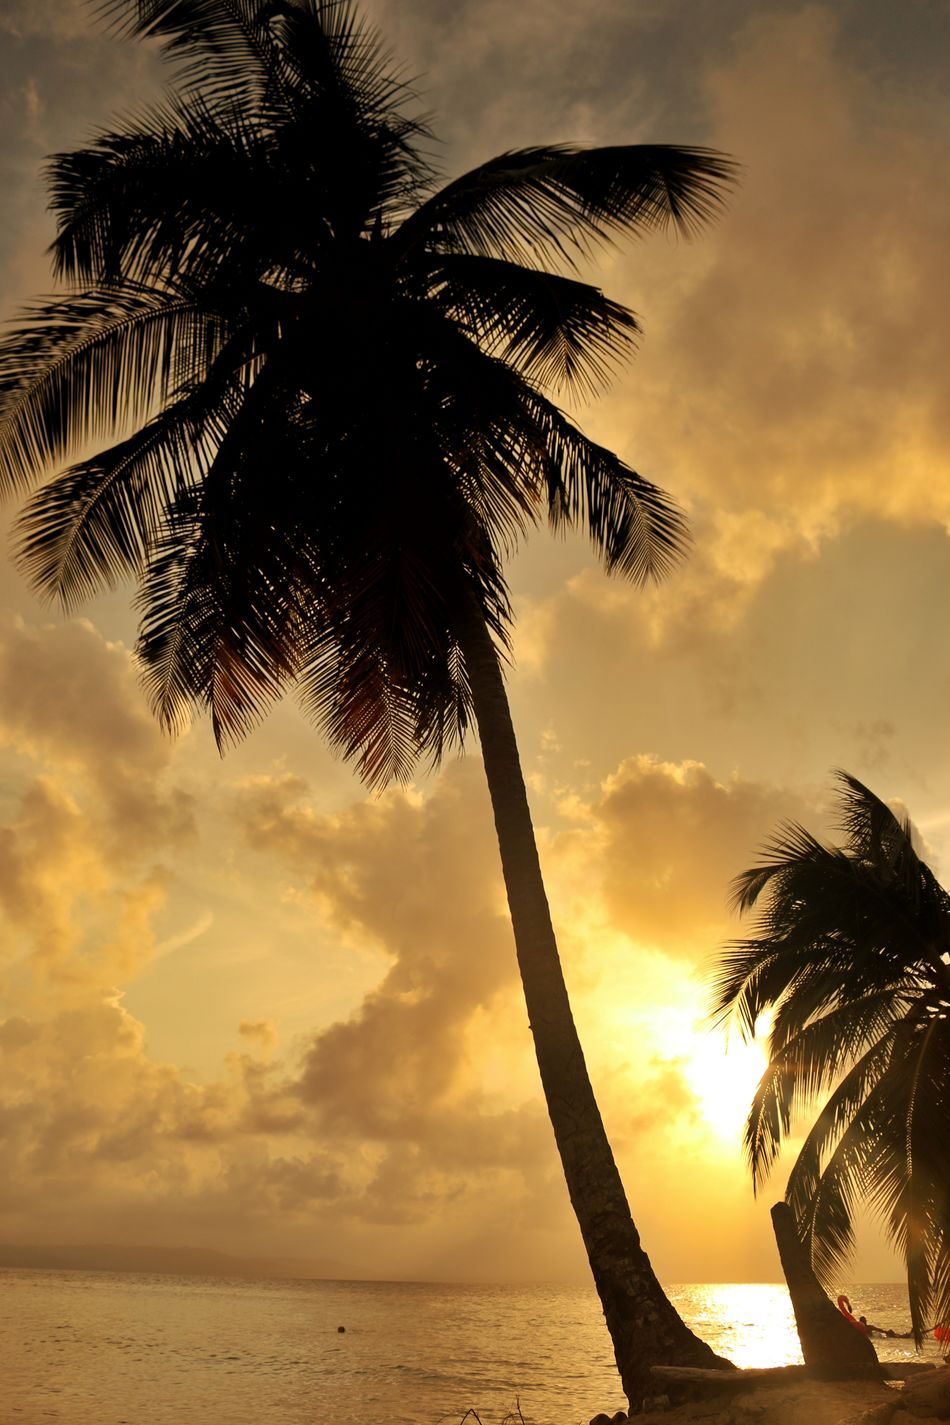 Sunset Sea Nature Tree No People Sky Outdoors Sunlight Palm Tree Summer Vacations Water Beach Sun Backgrounds Day Sunset_collection Palms Trees Palms Palmeras Caribe,paraiso Romantic Sky Photoshoot Photography Sunlight